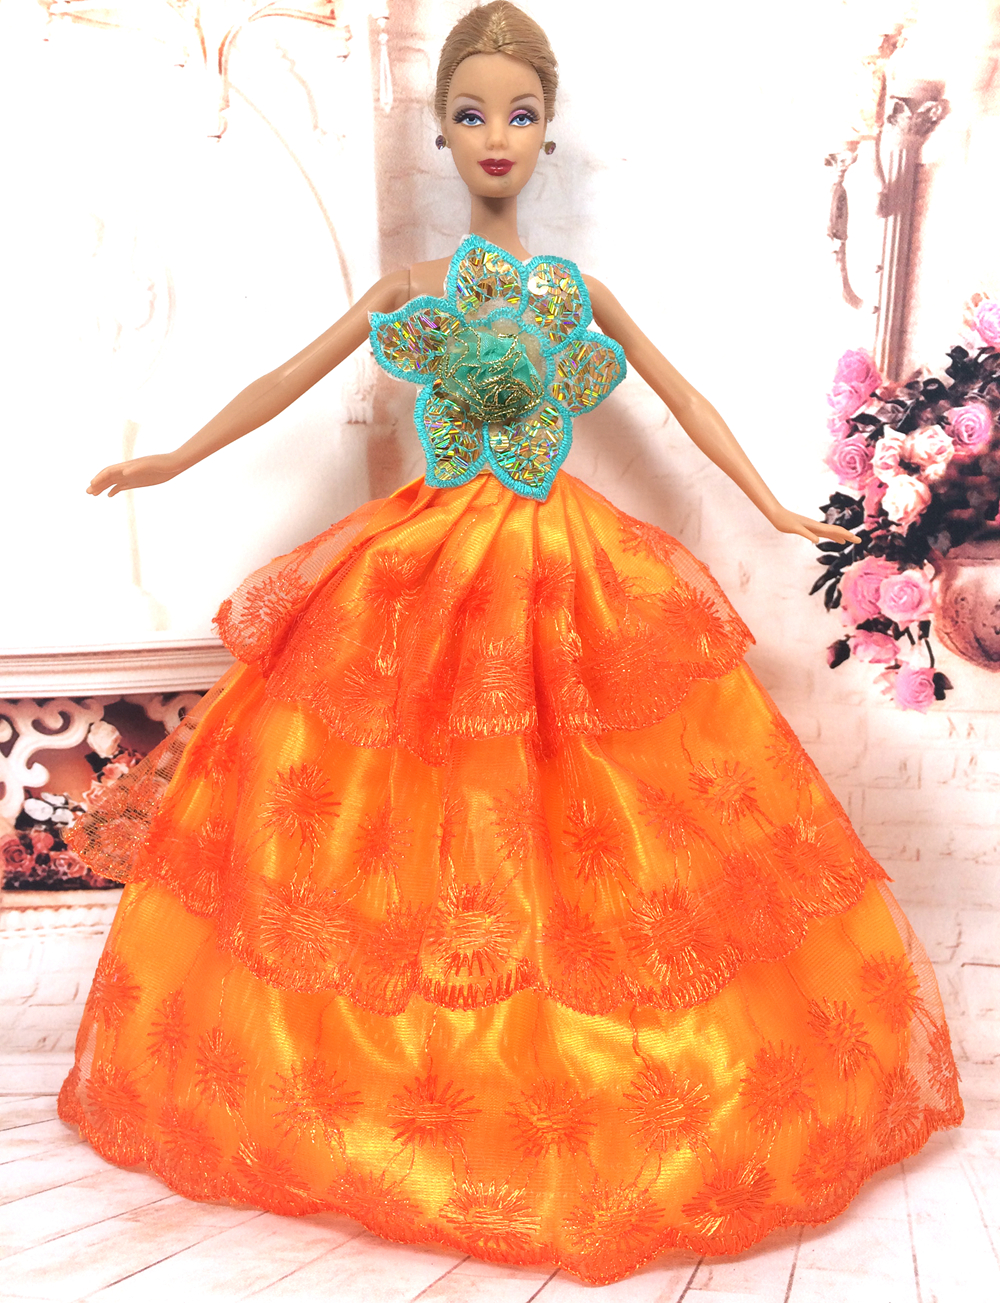 NK One Pcs Handmade Princess Marriage ceremony Costume Noble Occasion Robe For Barbie Doll Trend Design Outfit Finest Reward For Woman' Doll 017A